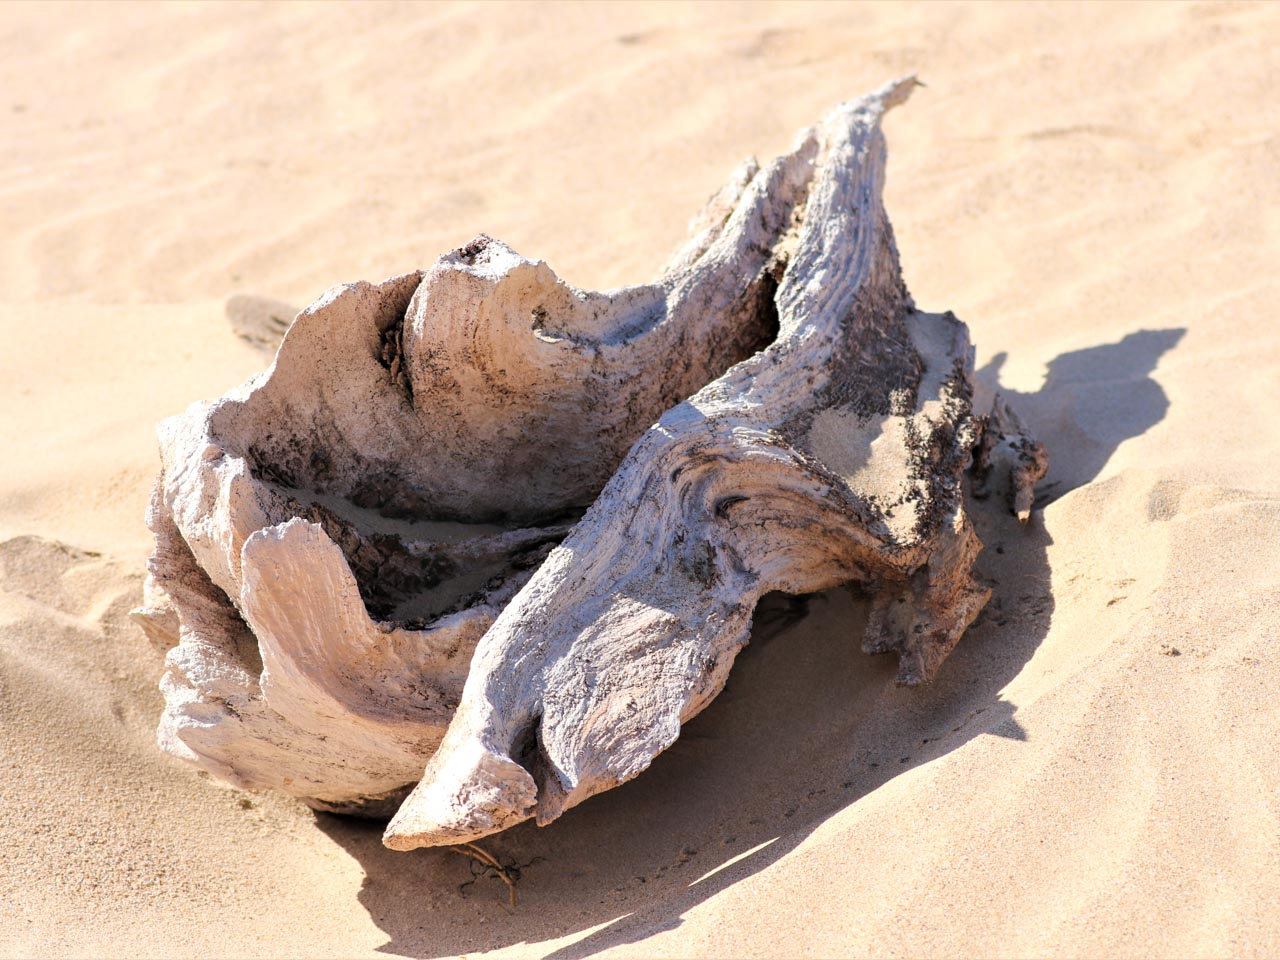 bleached-driftwood-on-a-south-african-beach